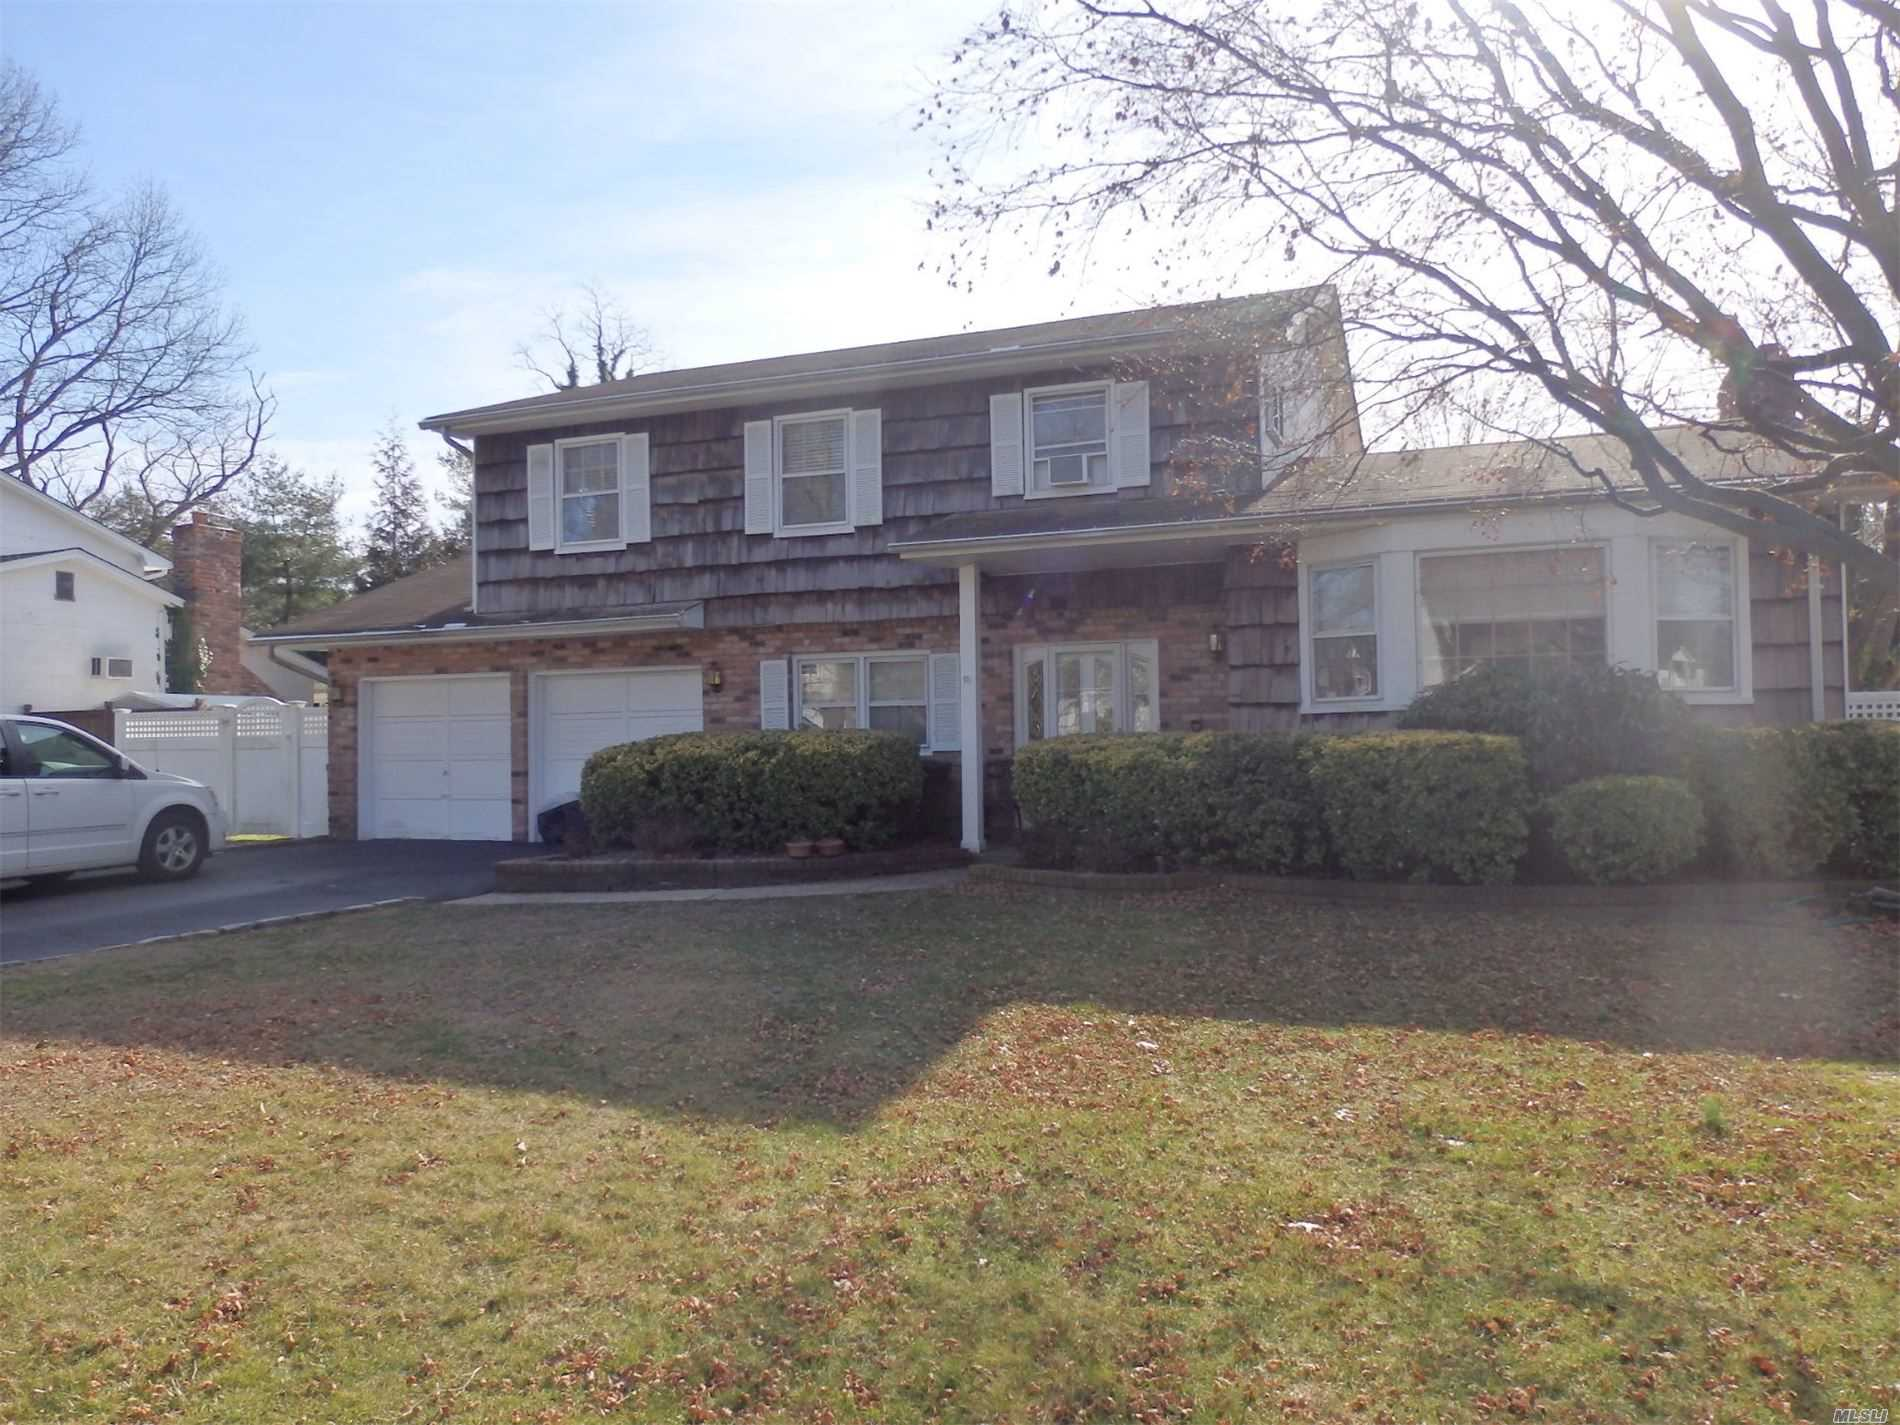 27 Stonywood Dr - Commack, New York